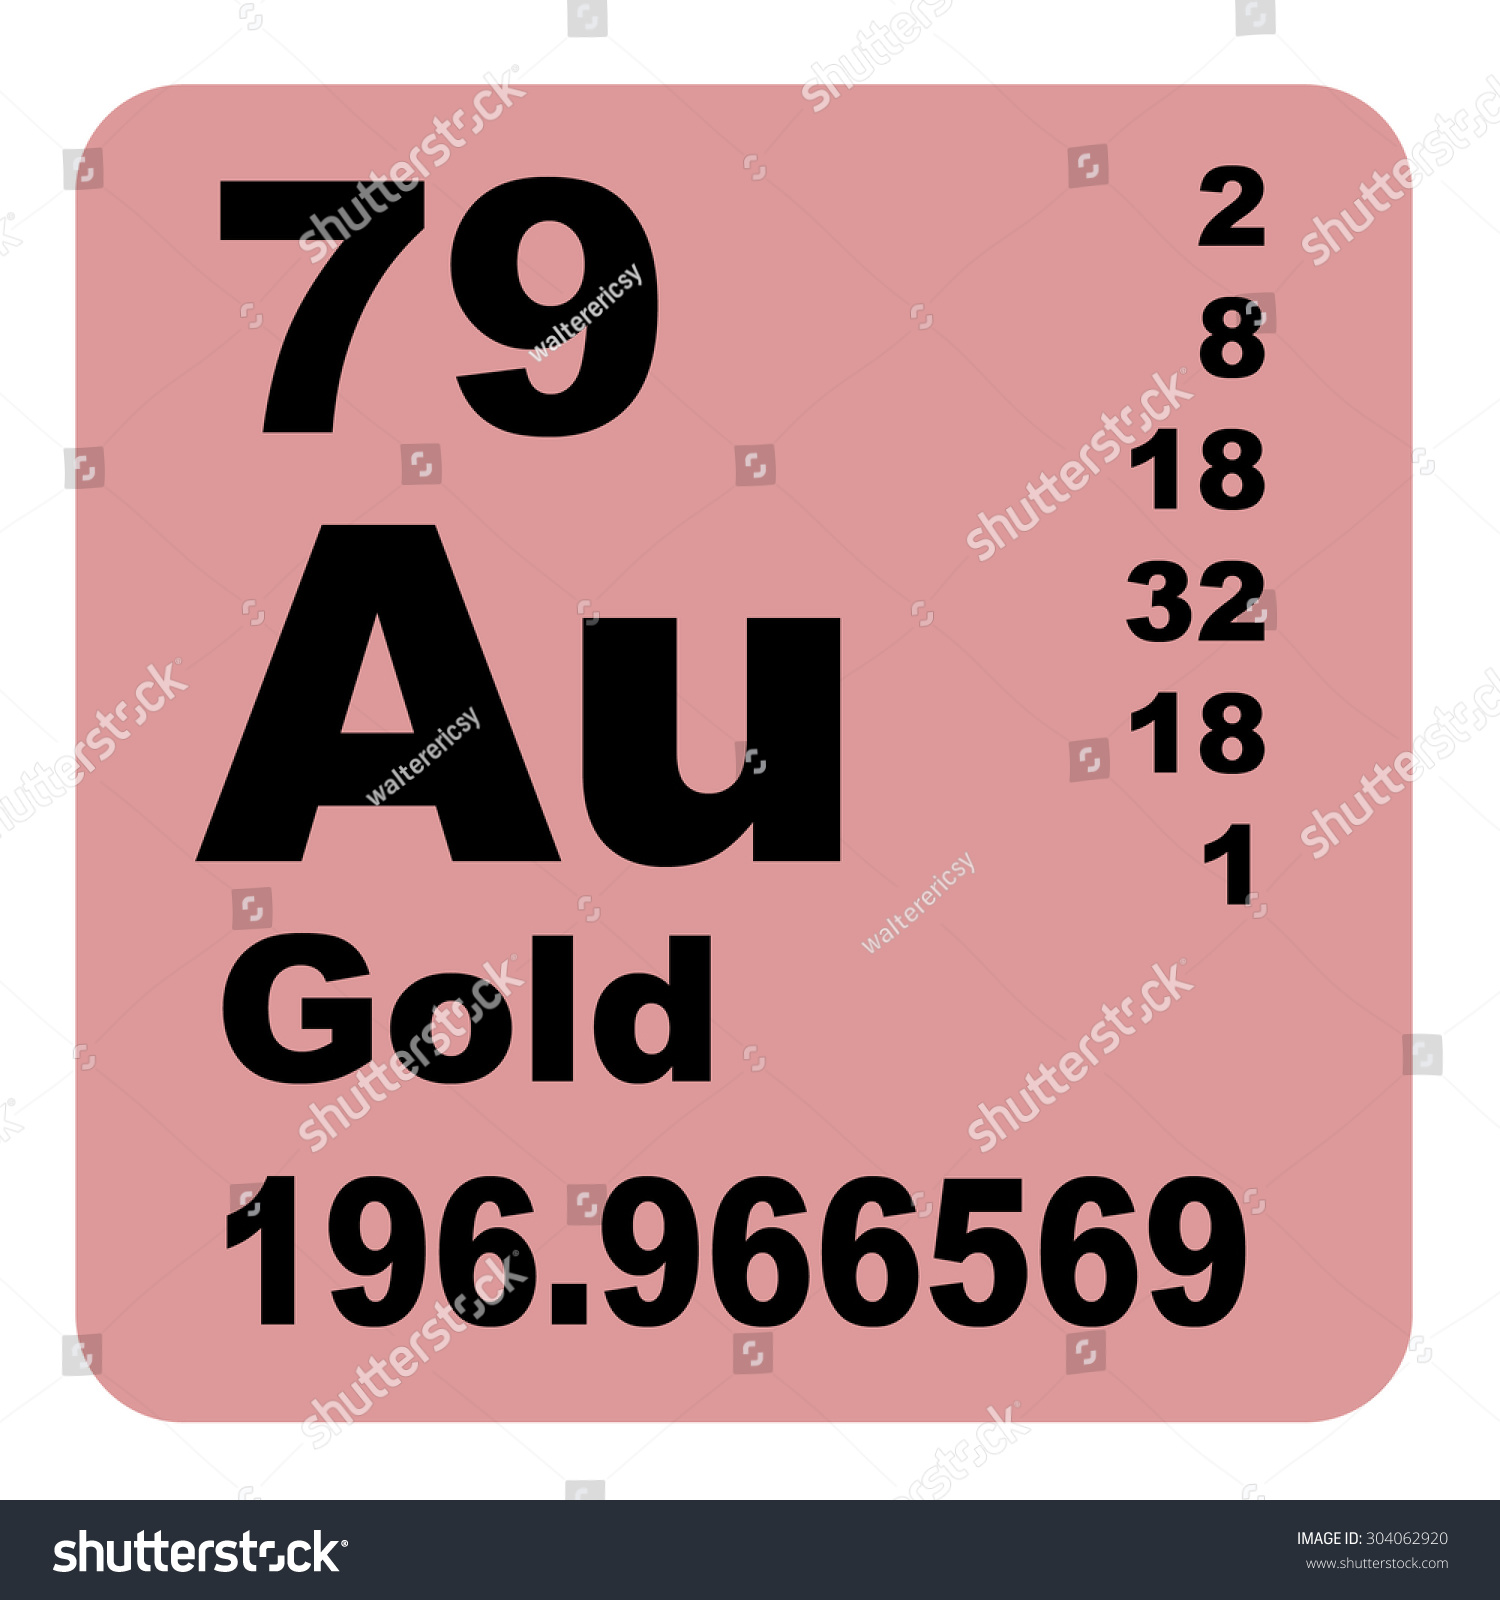 Gold periodic table wikipedia mind map tools free sample of kpi gold period table gallery periodic table images stock photo gold periodic table of elements 304062920 gold gamestrikefo Image collections